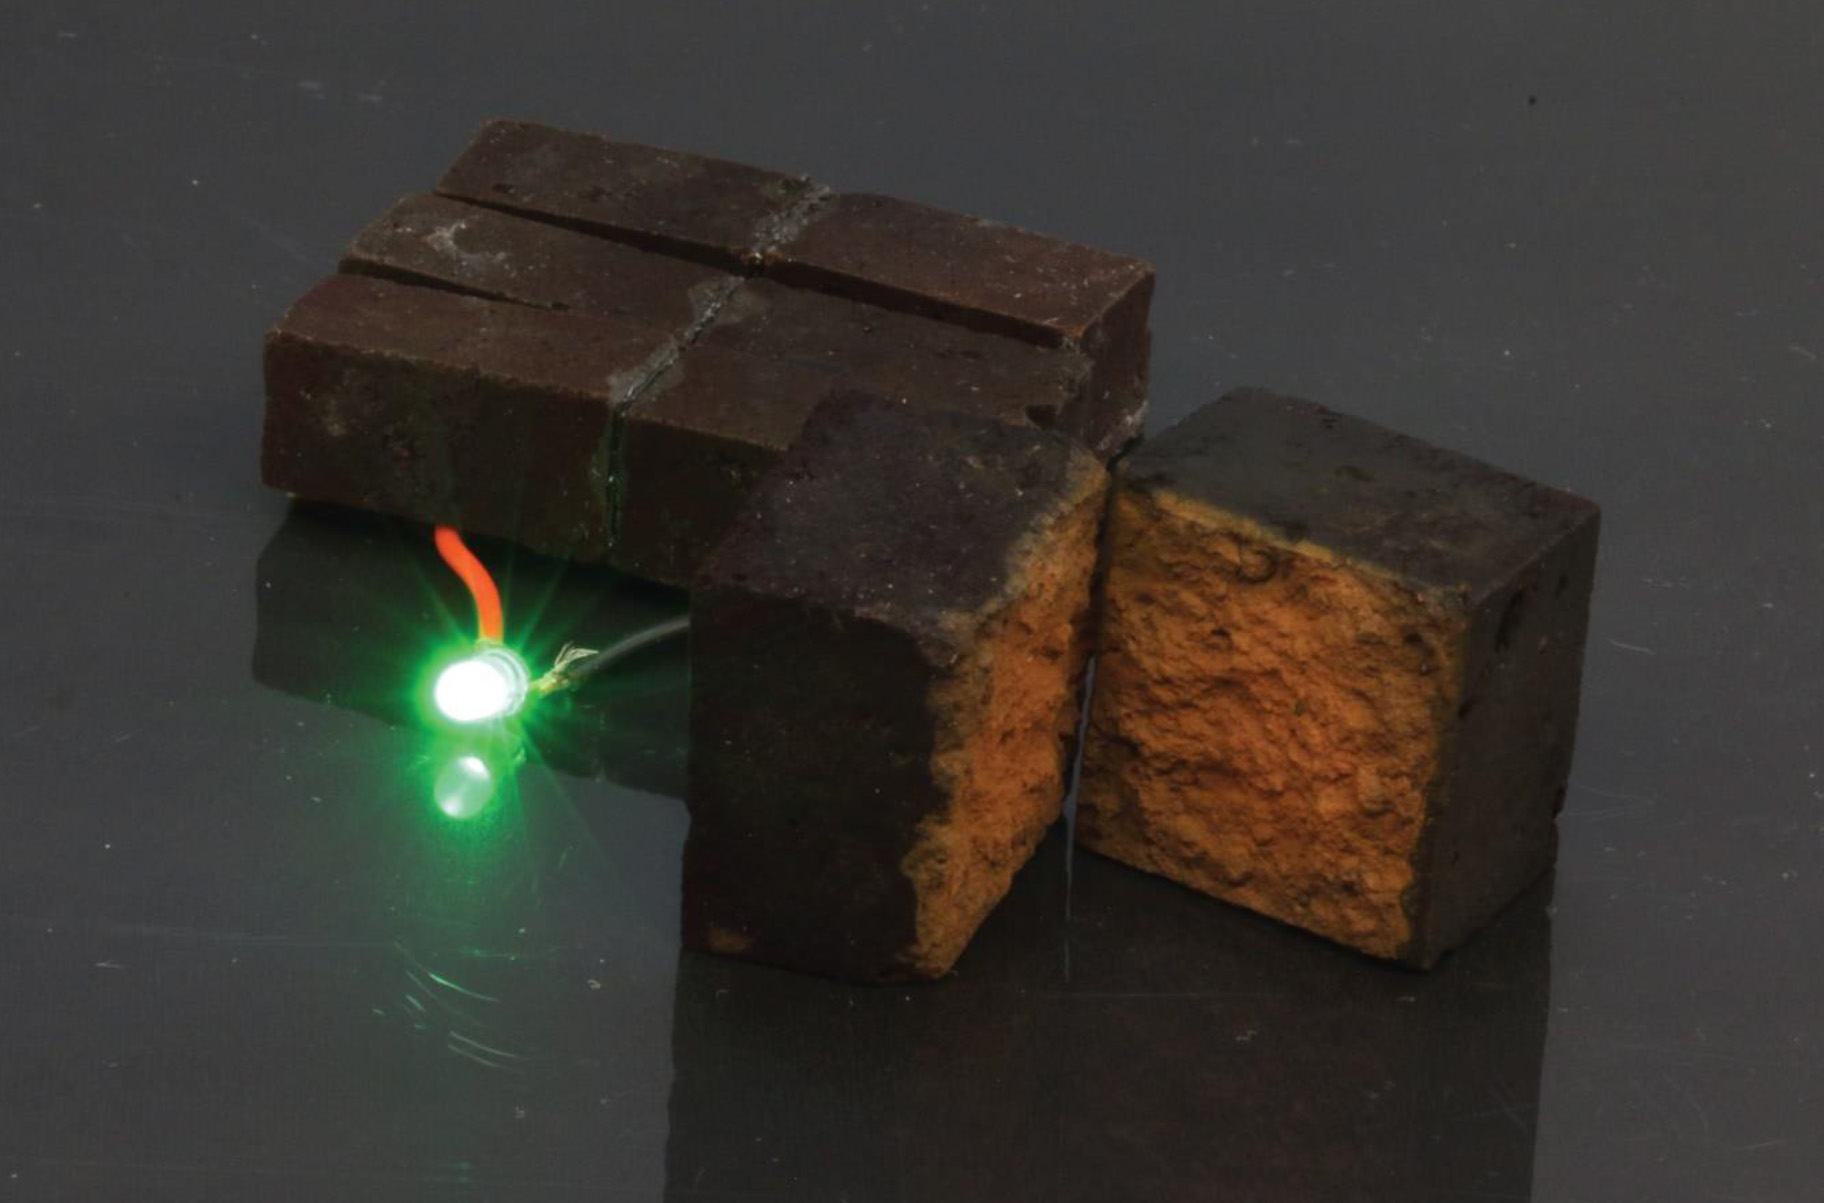 Three larger brick supercapacitors in series light an LED. The split brick on the right shows the color-change from the PEDOT coating.